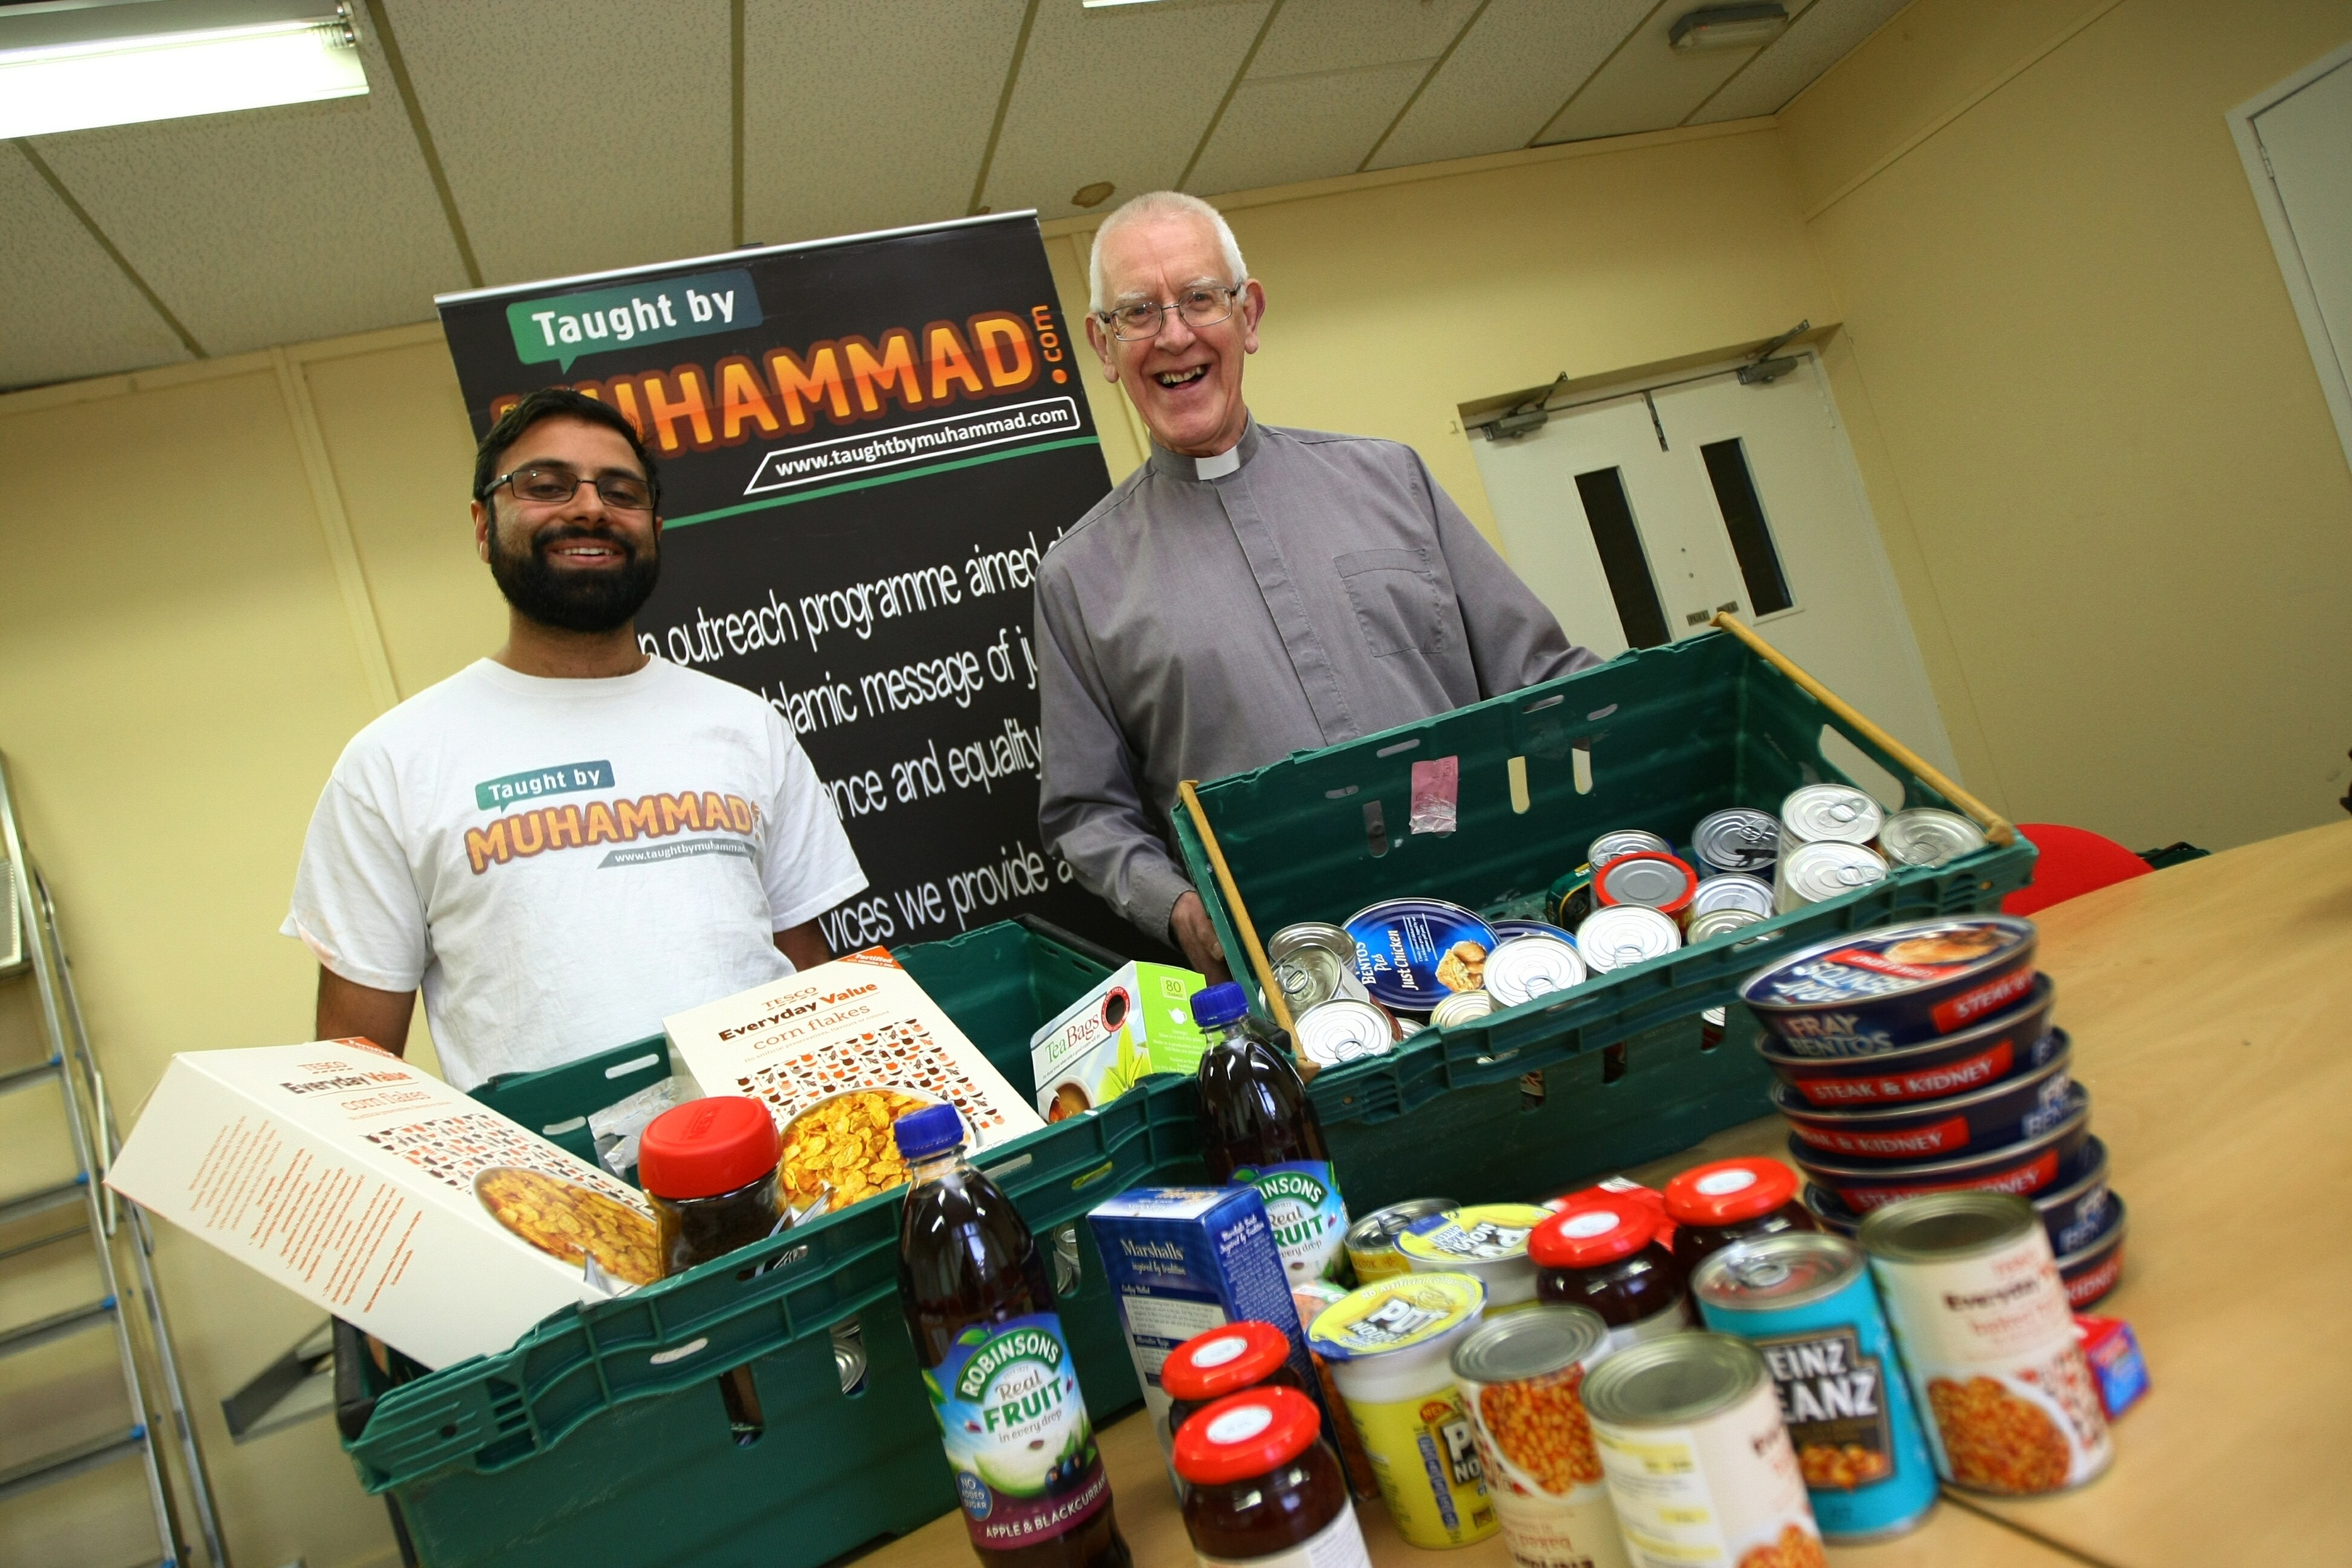 Rizwan has worked with other faith groups, incluing Reverend Mike Mair, to promote peace and tolerance.